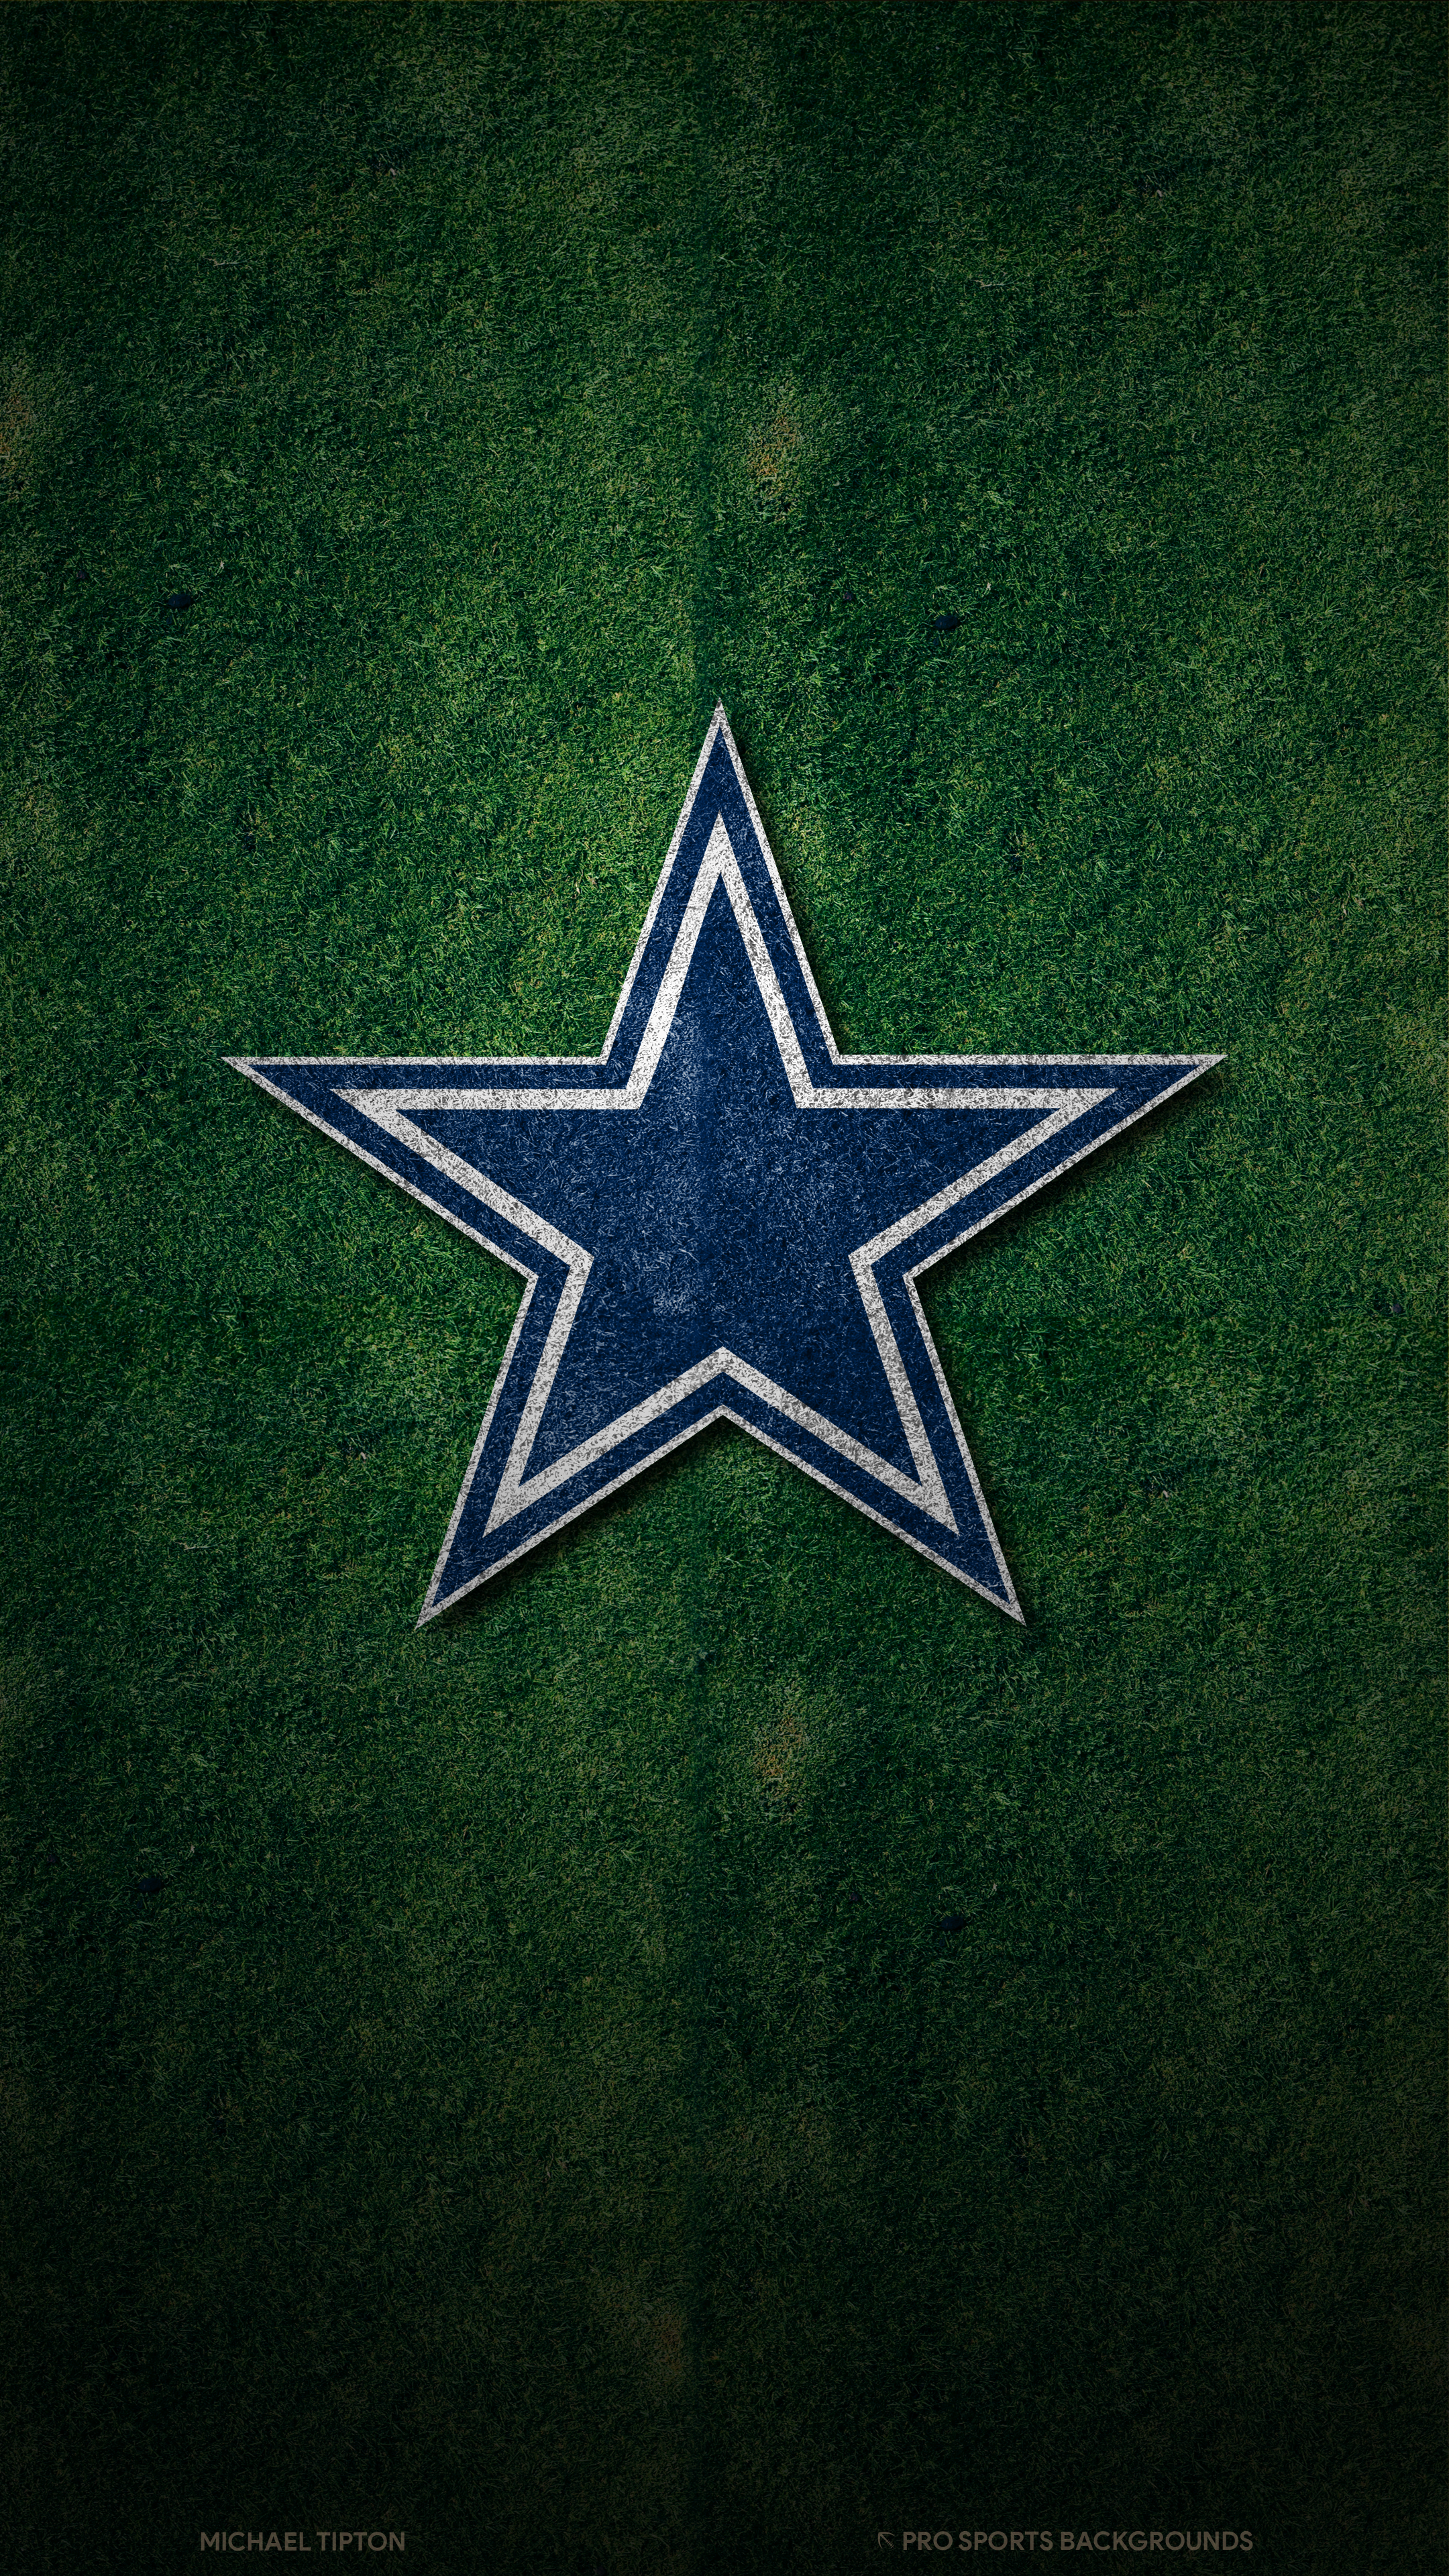 2020 Dallas Cowboys Wallpapers Pro Sports Backgrounds 2160x3840